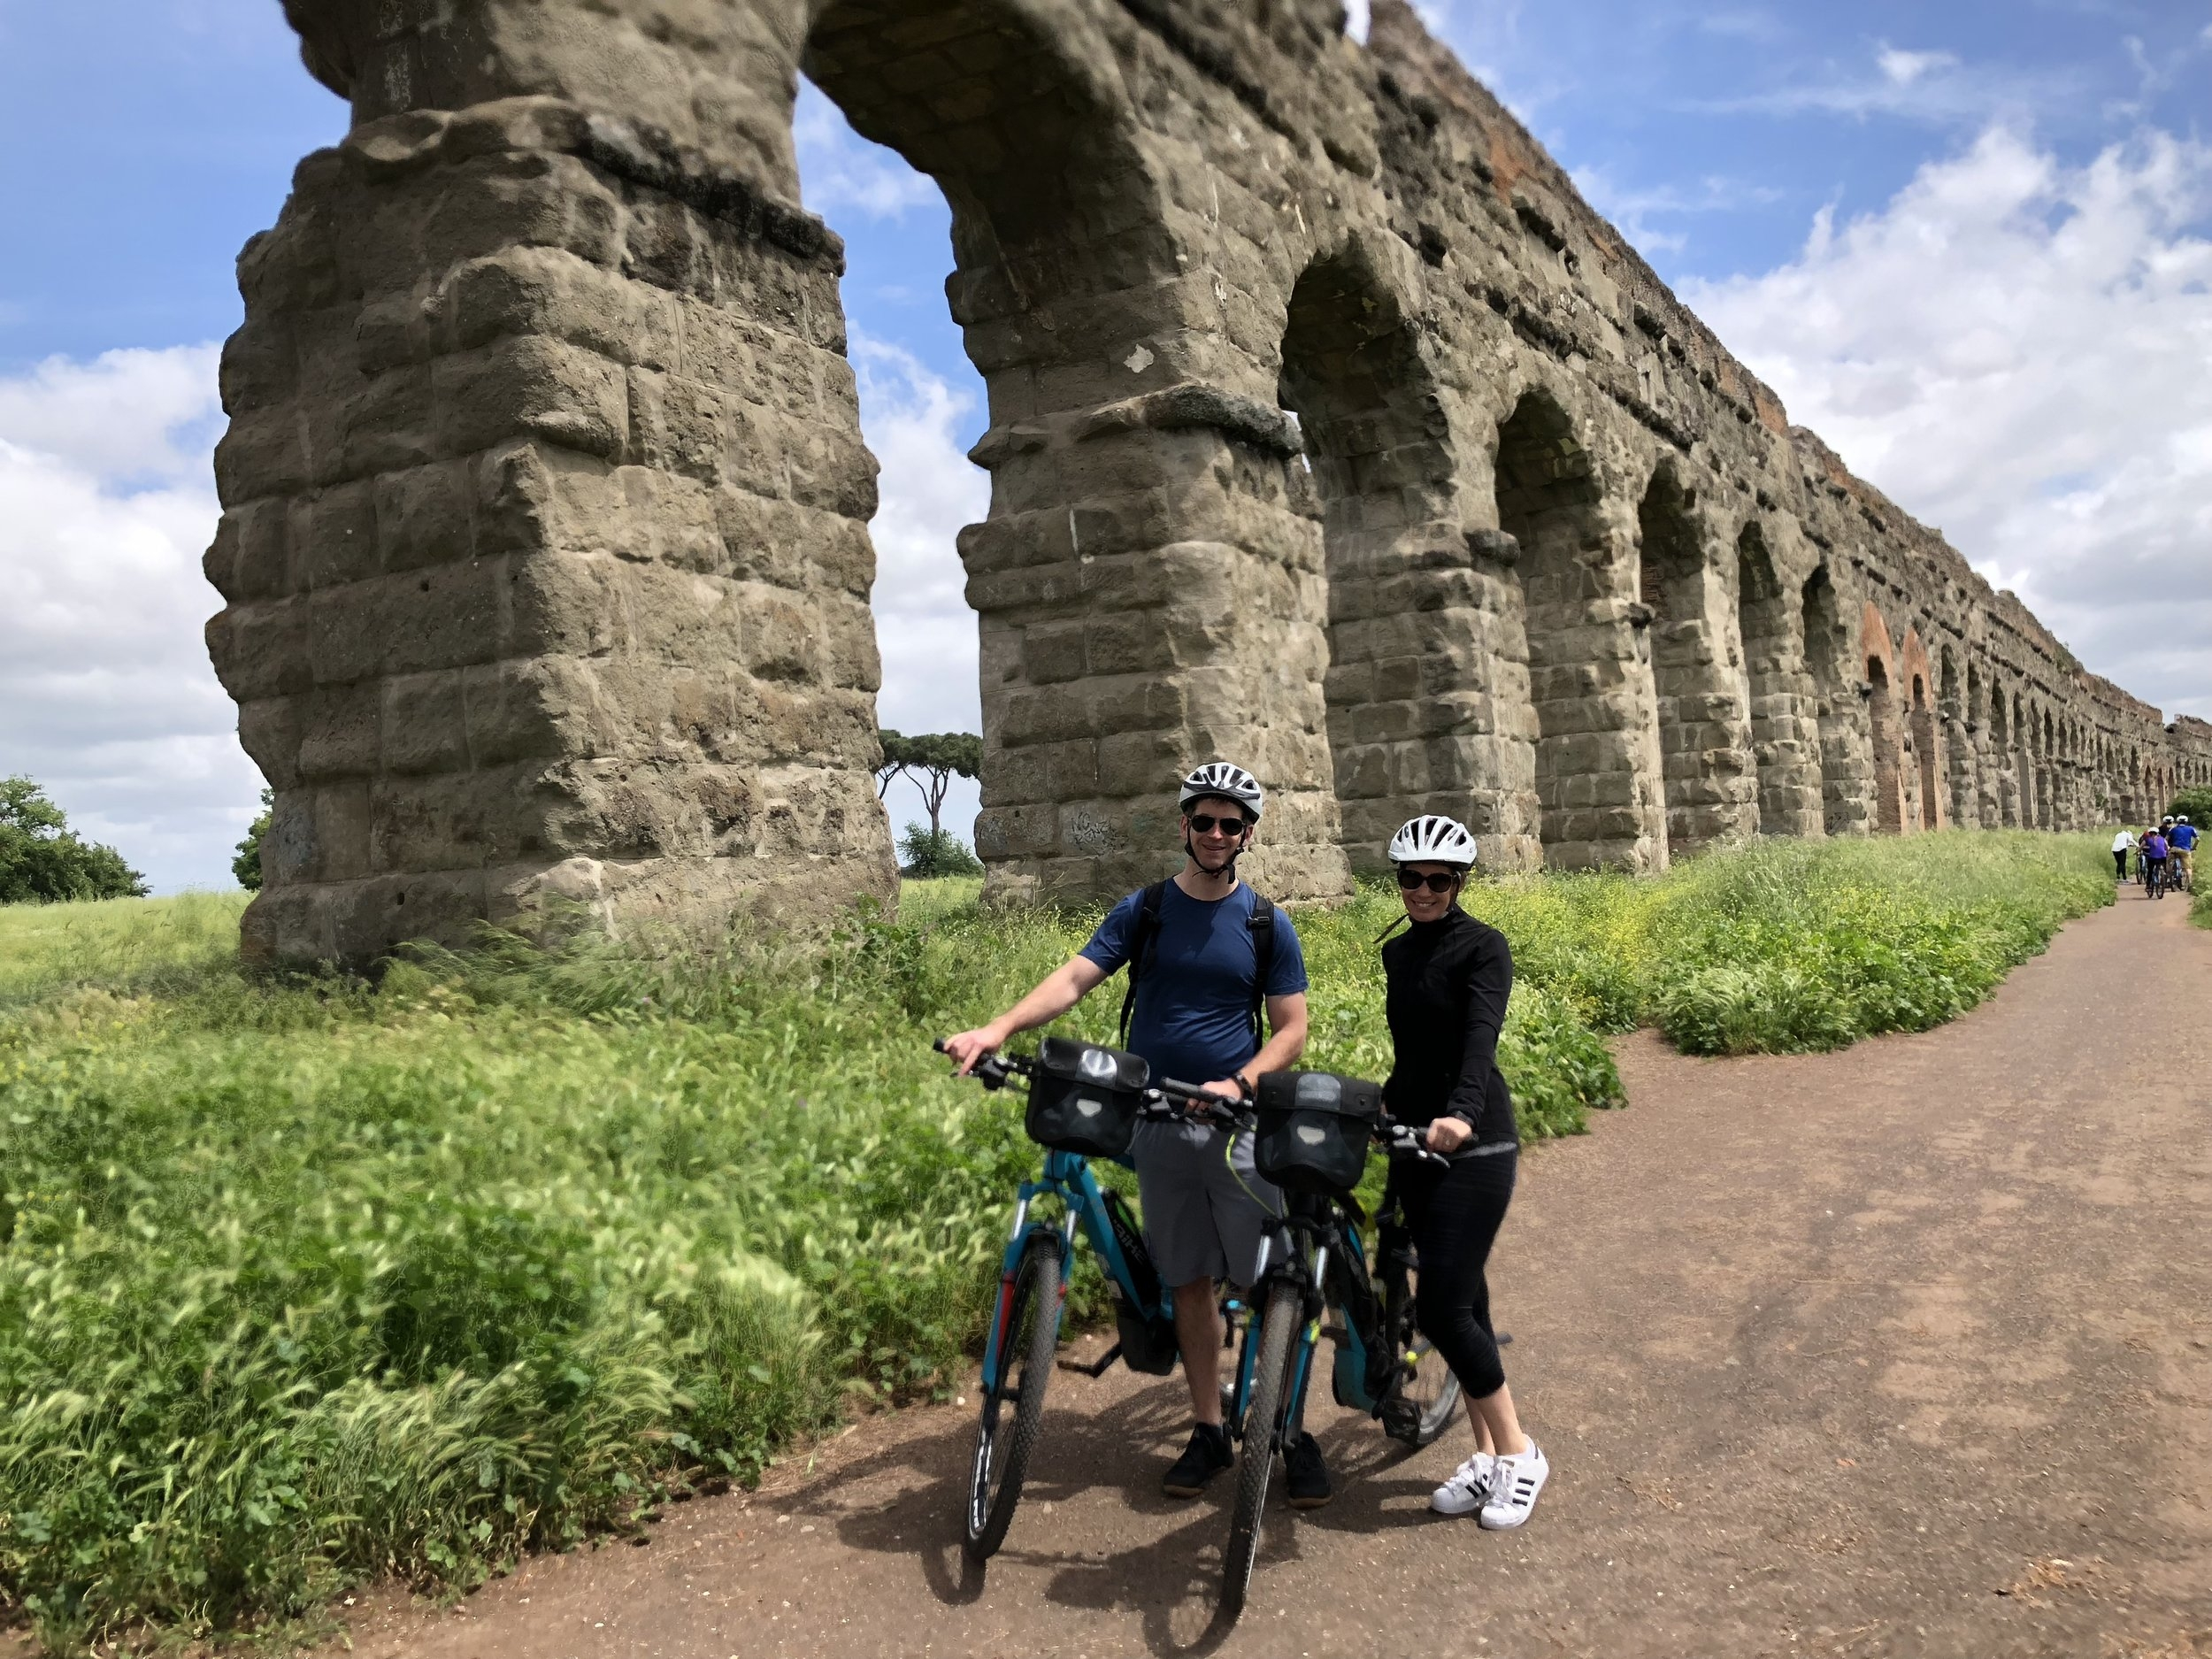 A ride along the Roman Aqueducts on a warm May day.